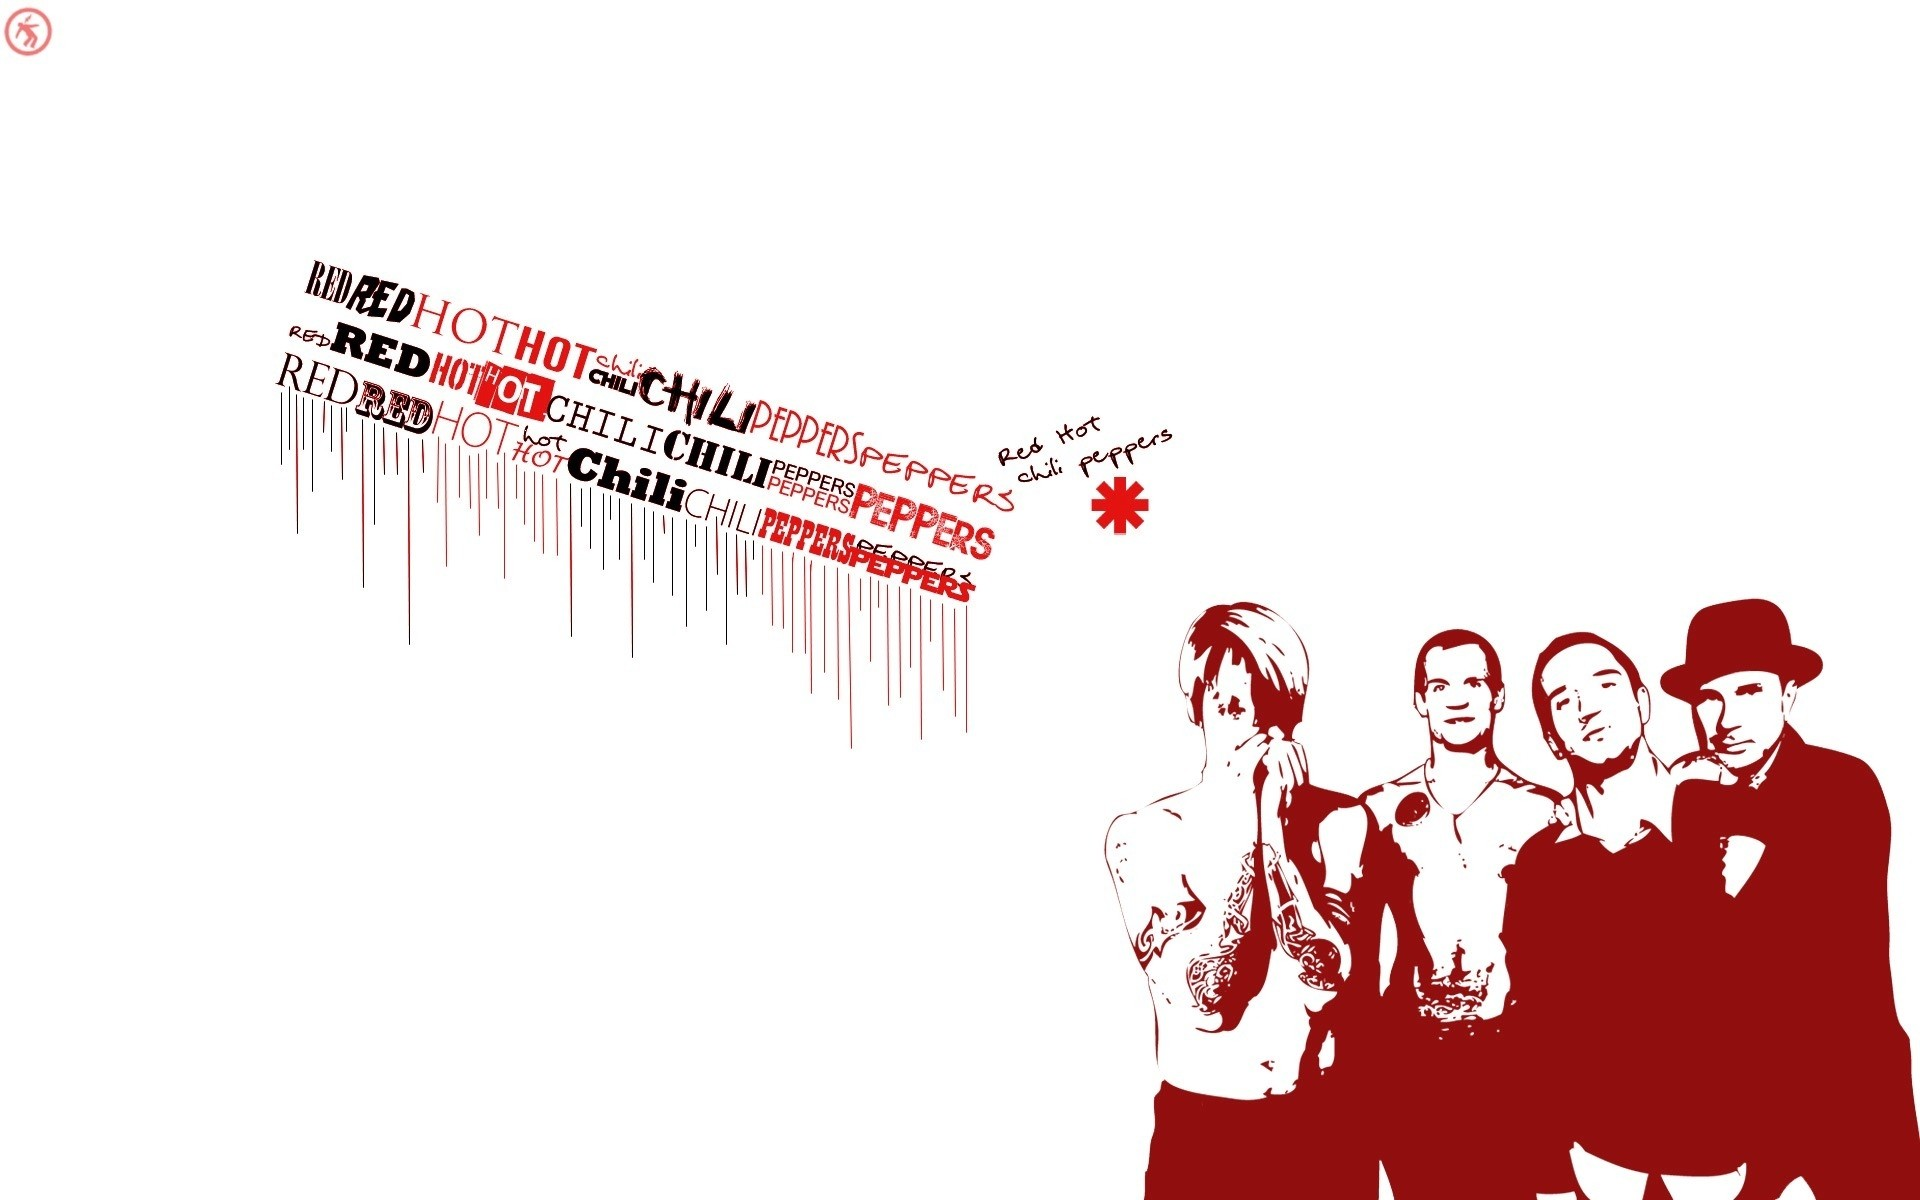 Red Hot Chili Peppers Poster Android Wallpapers